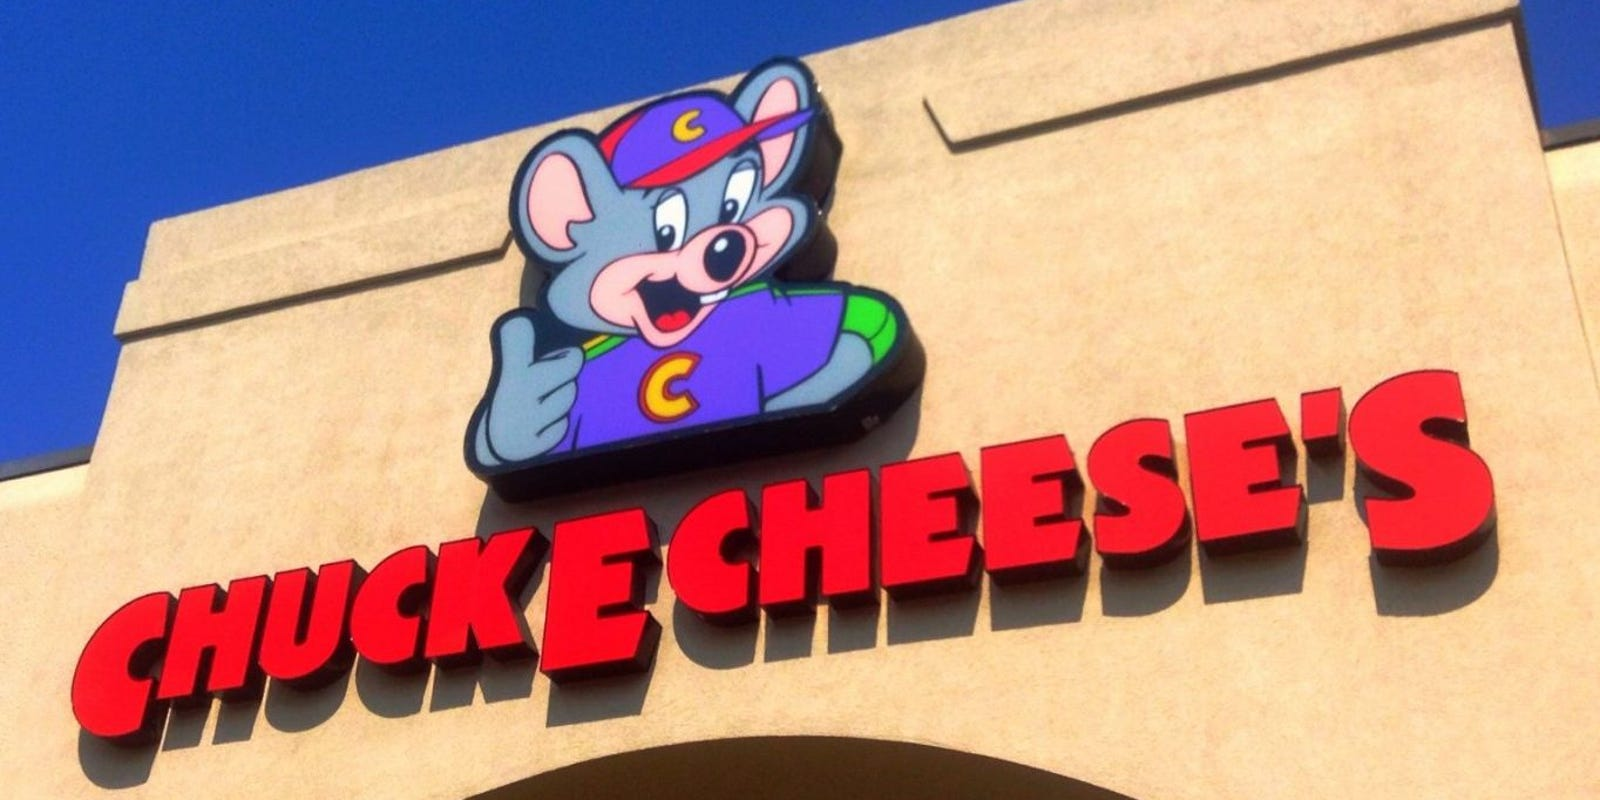 Ordering food? Chuck E. Cheese's new pizza place is confusing some online